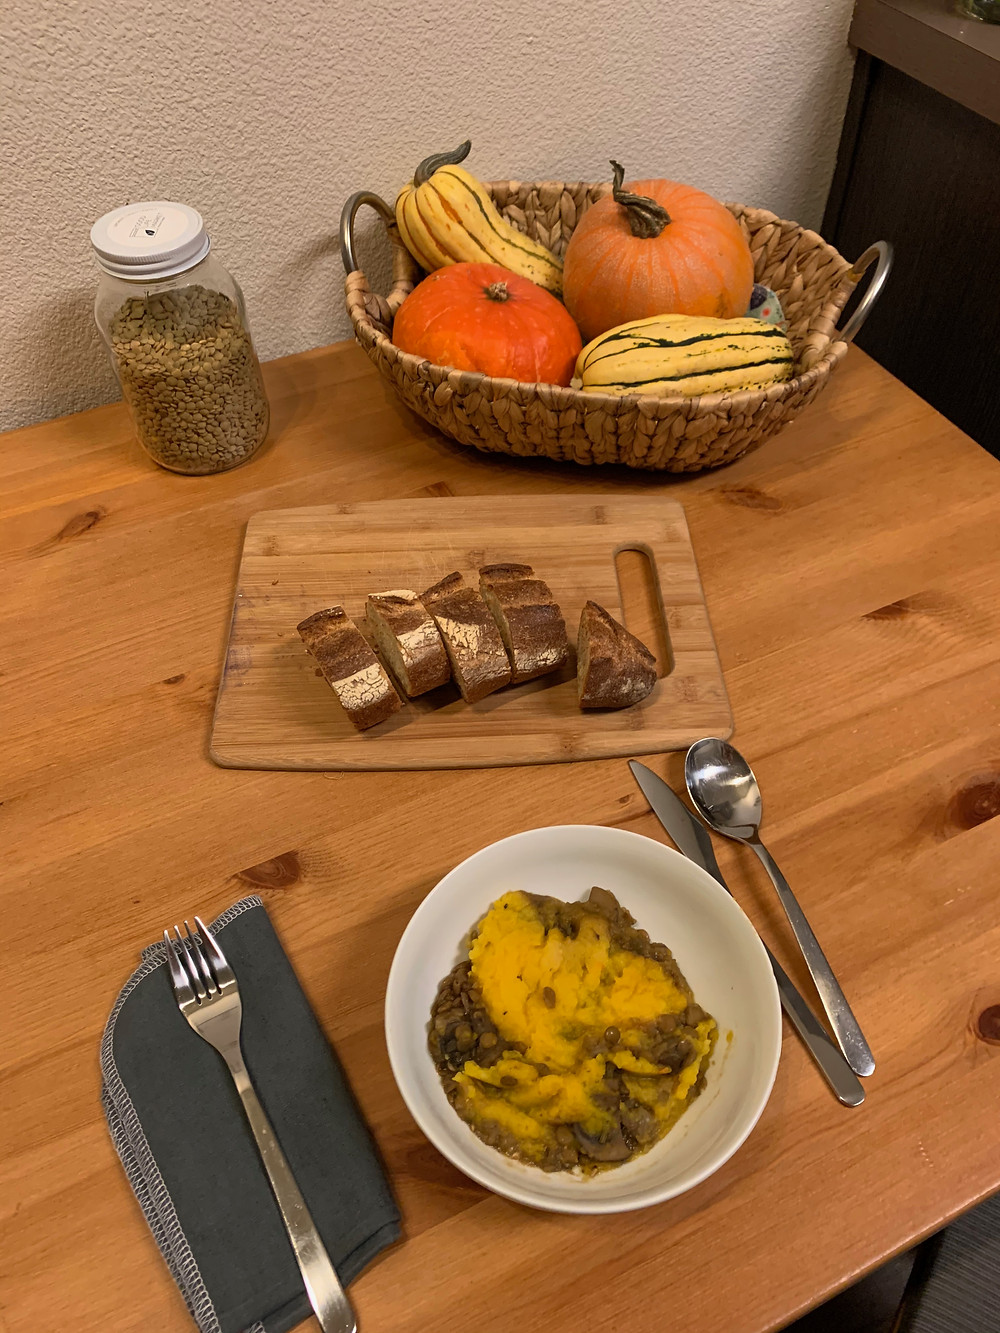 A bowl of shepherd's pie, sliced bread, a glass jar of lentils, and basket of squash sit on a wooden dining table.